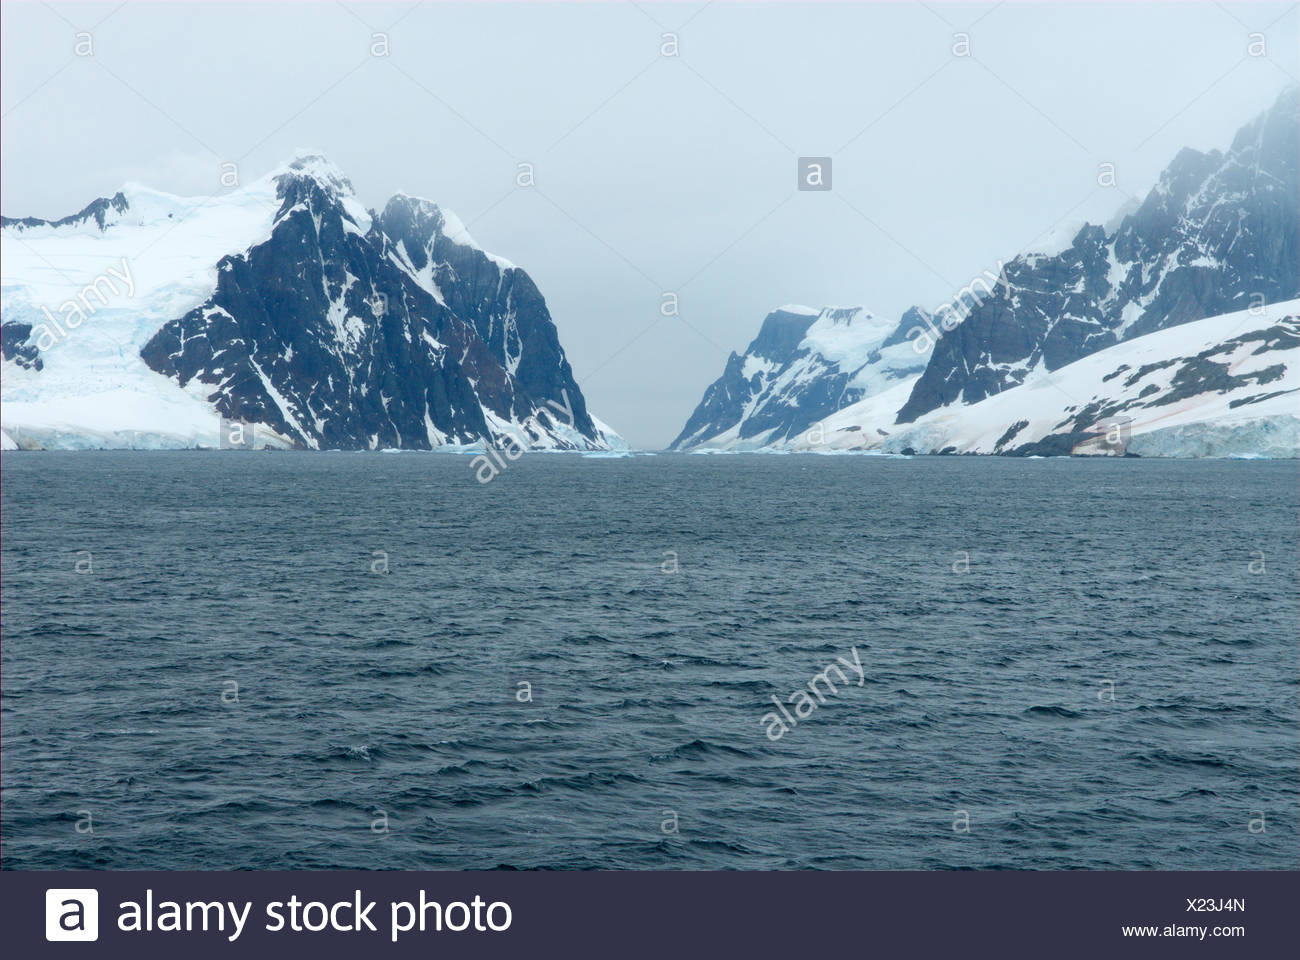 Iced mountains at the waterside - Stock Image